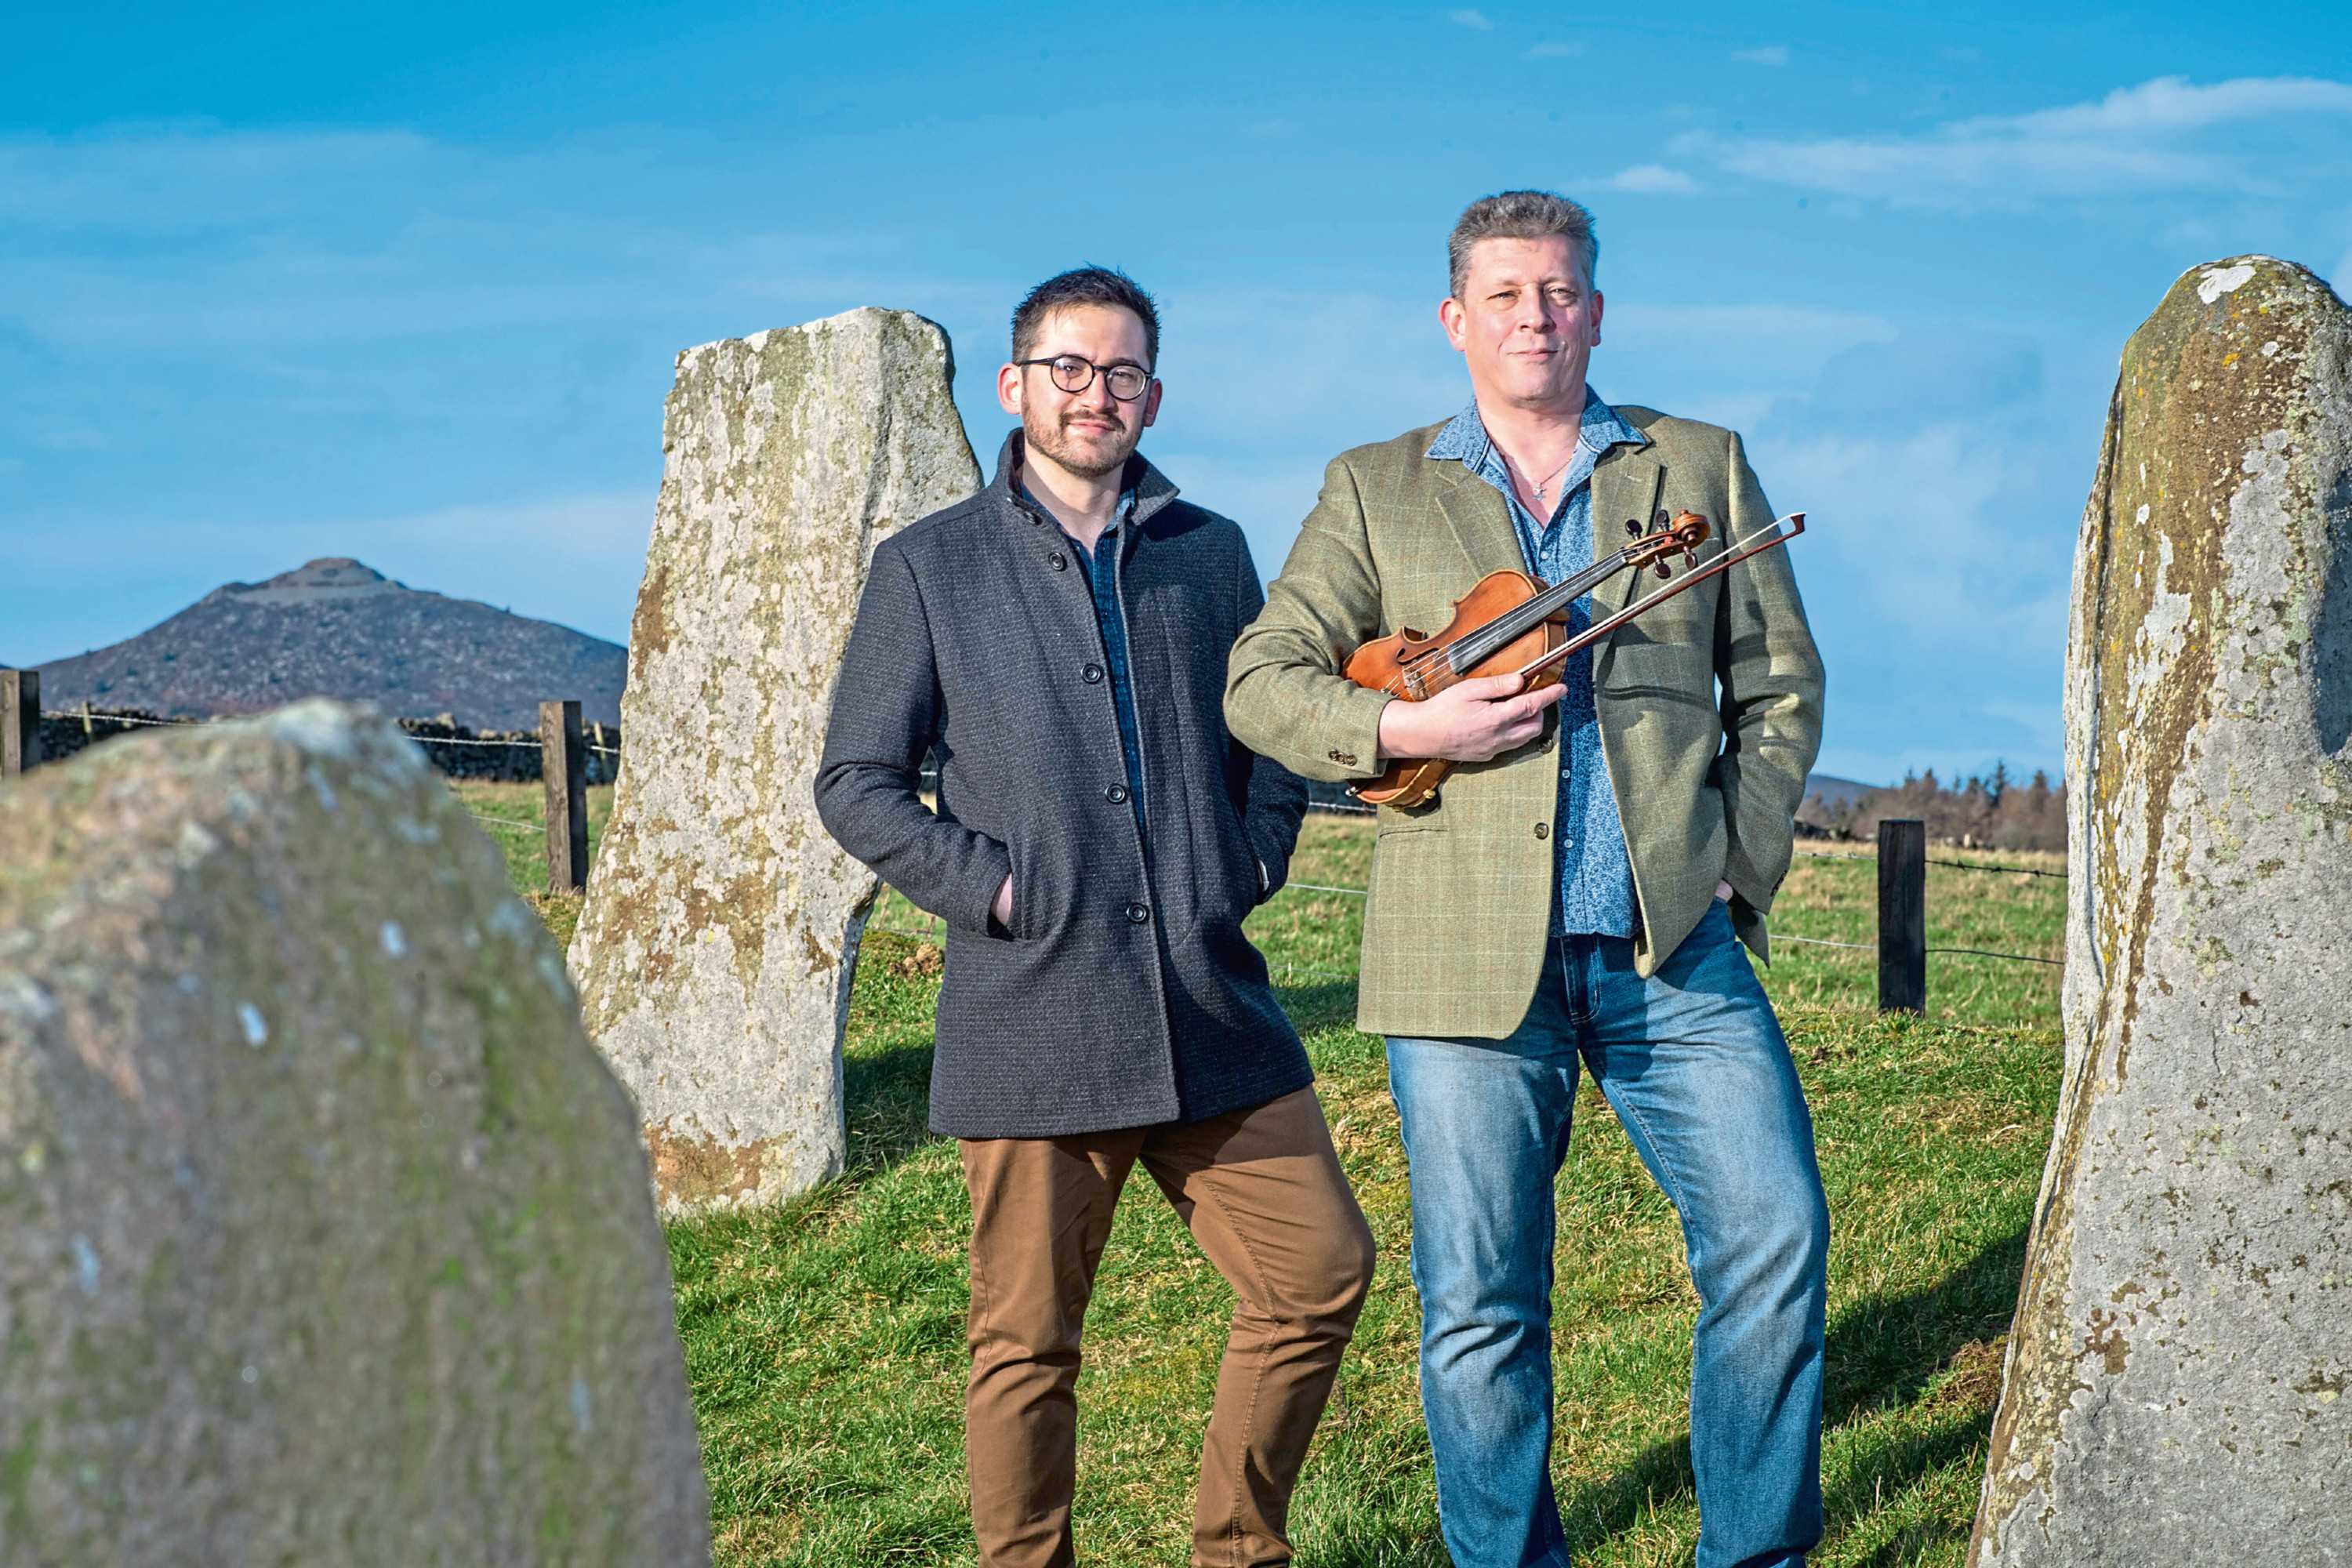 Benjamin McMillan and Paul Anderson have won VisitAberdeenshire's Sound of the North-East music competition